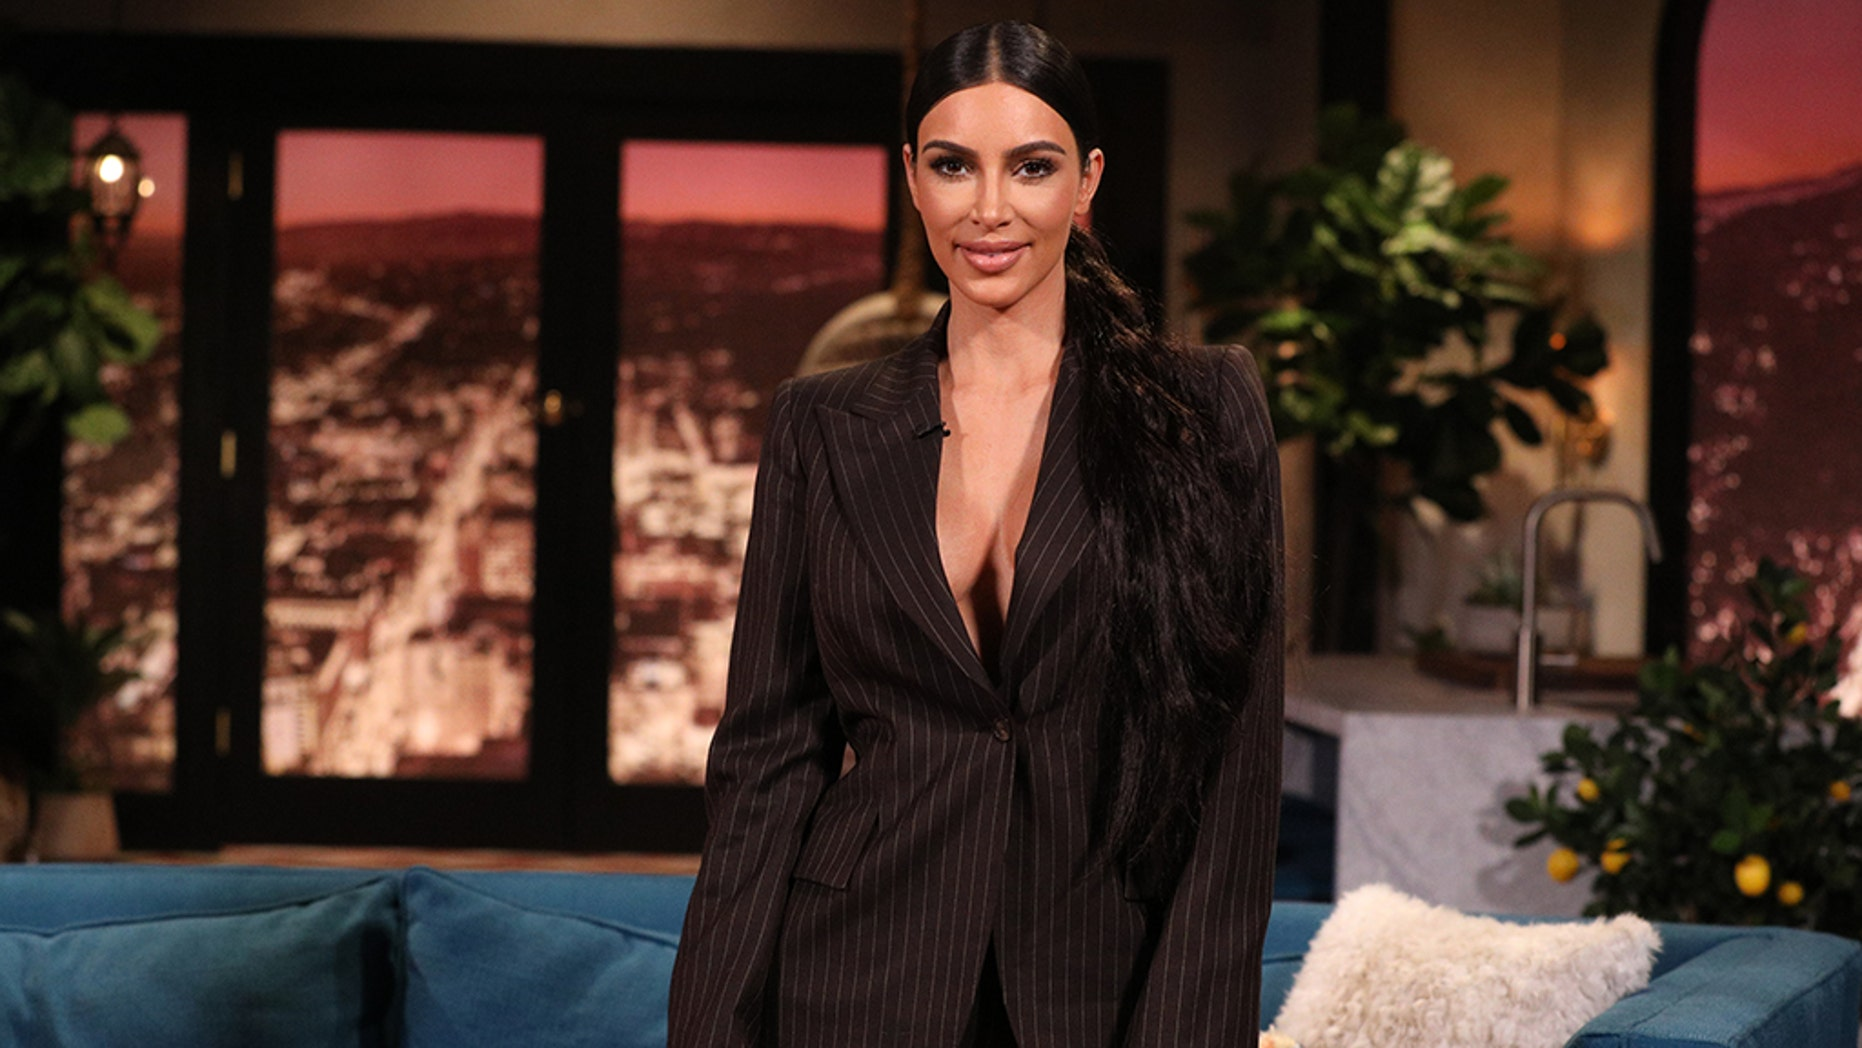 Watch Jimmy Fallon and Kim Kardashian West freak out touching mystery objects